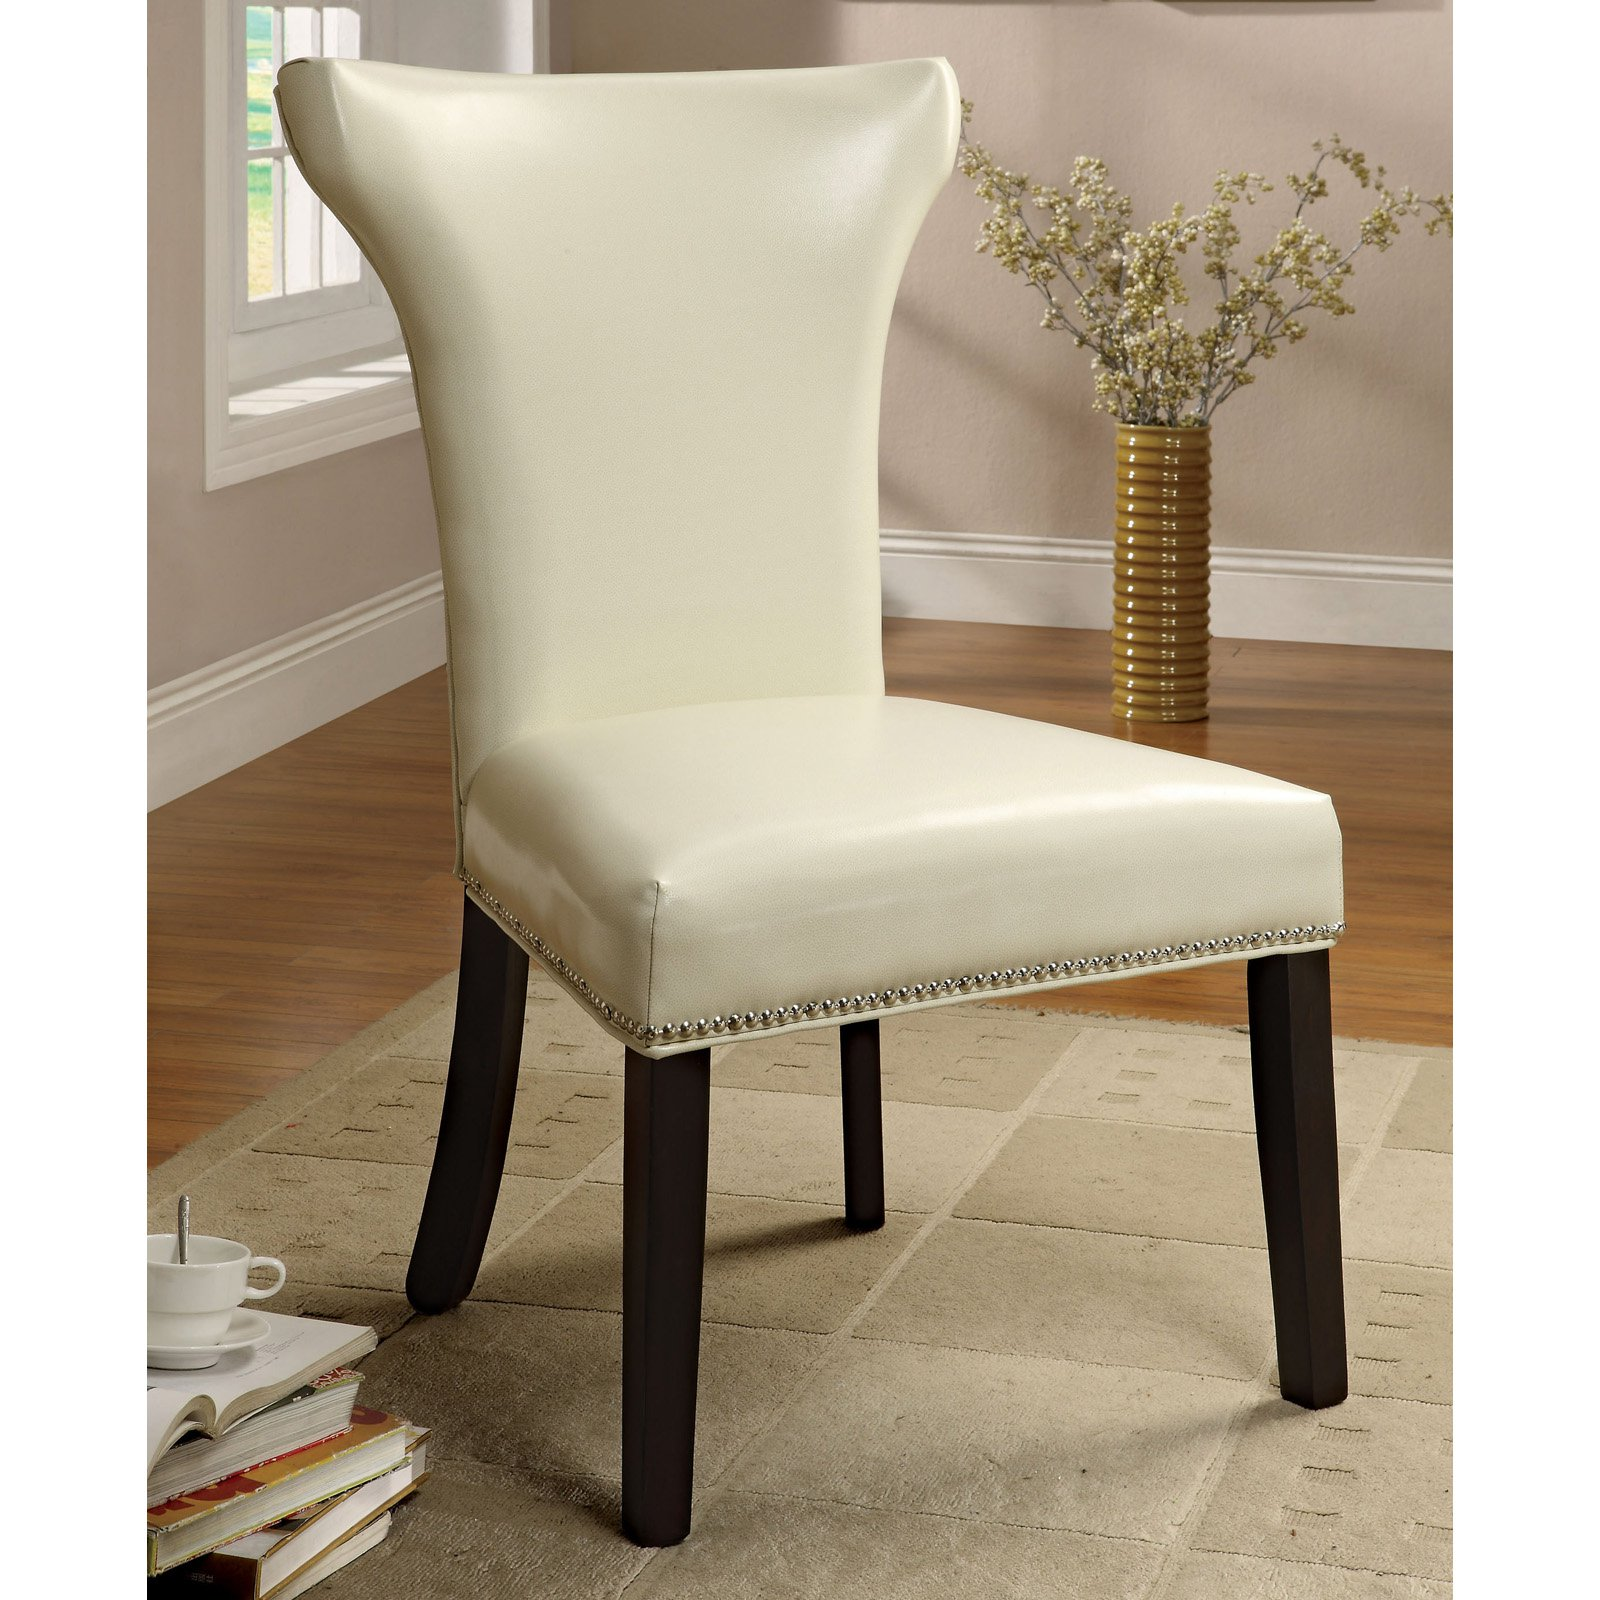 America Accent Chairs.Furniture Of America Renoir Leatherette Accent Chairs Set Of 2